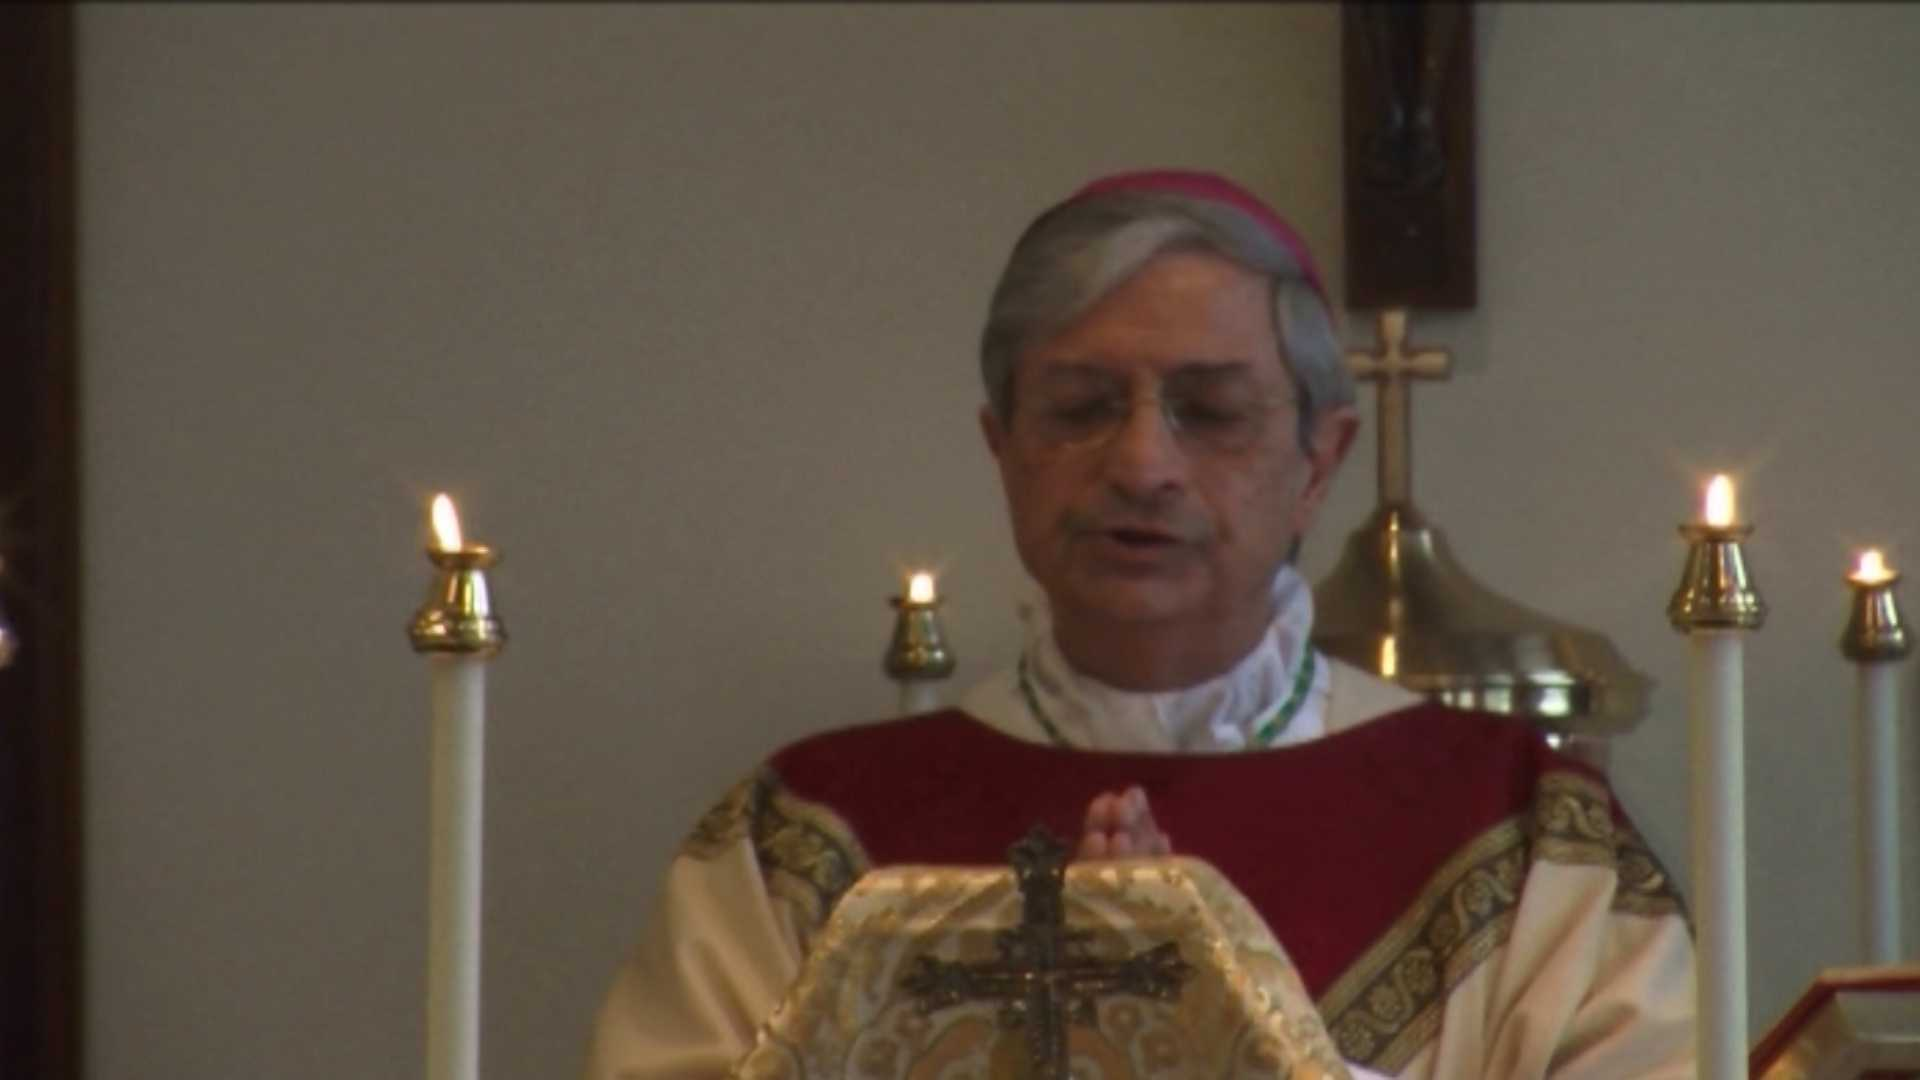 The Roman Catholic Church's bishop for Vermont has been named bishop of the Diocese of Rochester.